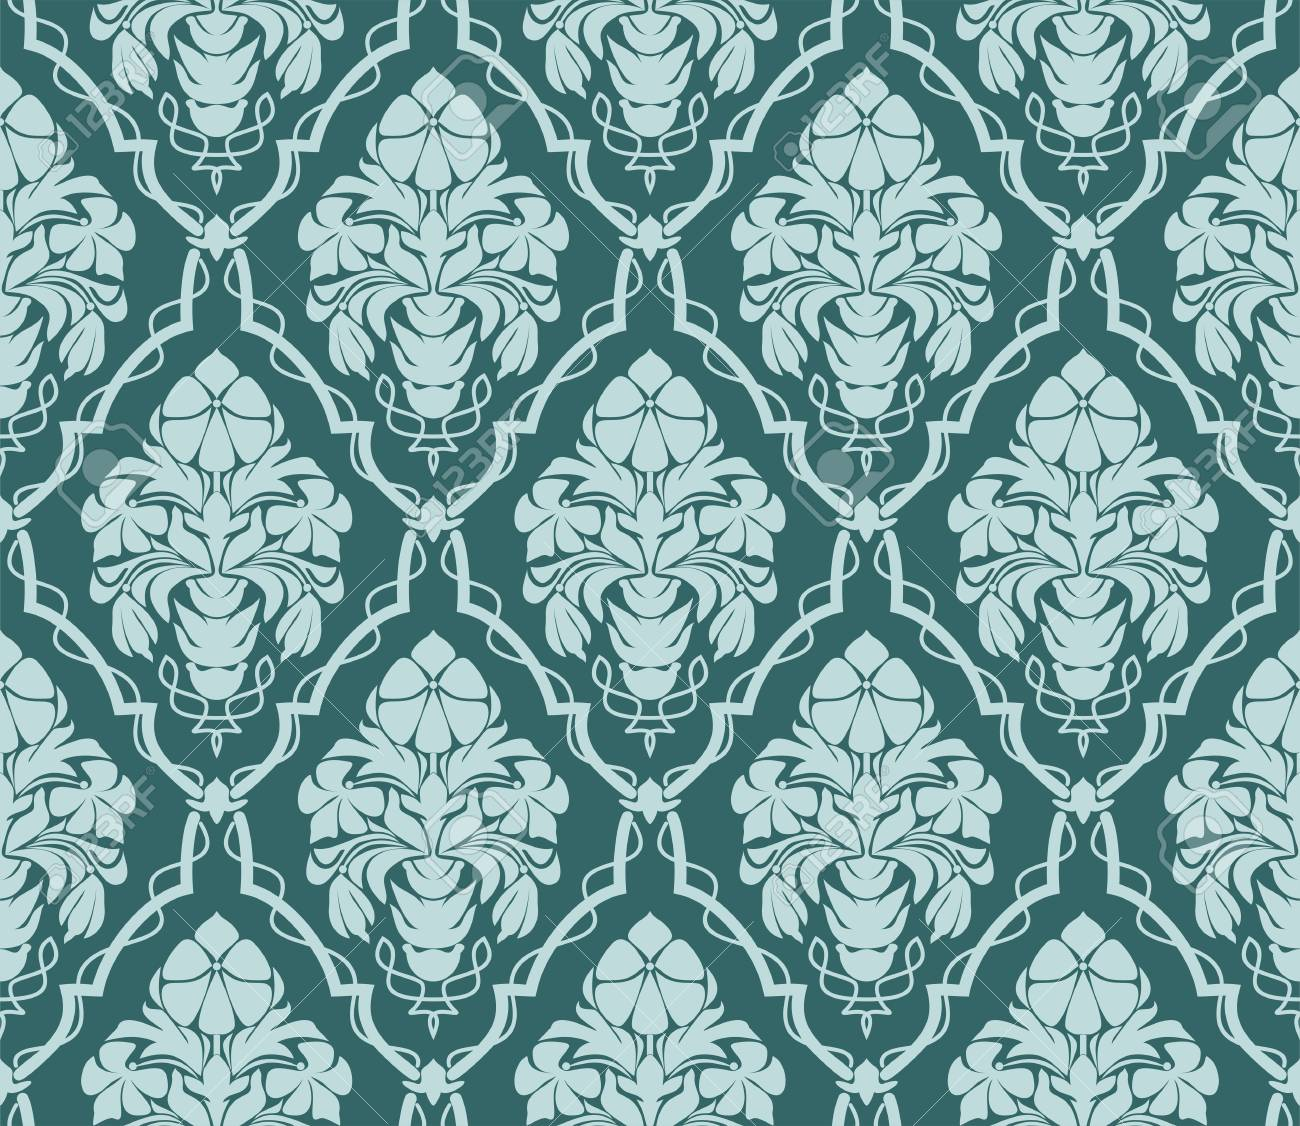 Seamless ornate damask Wallpaper for design. Ornament with bouquet of Flowers. - 103610137